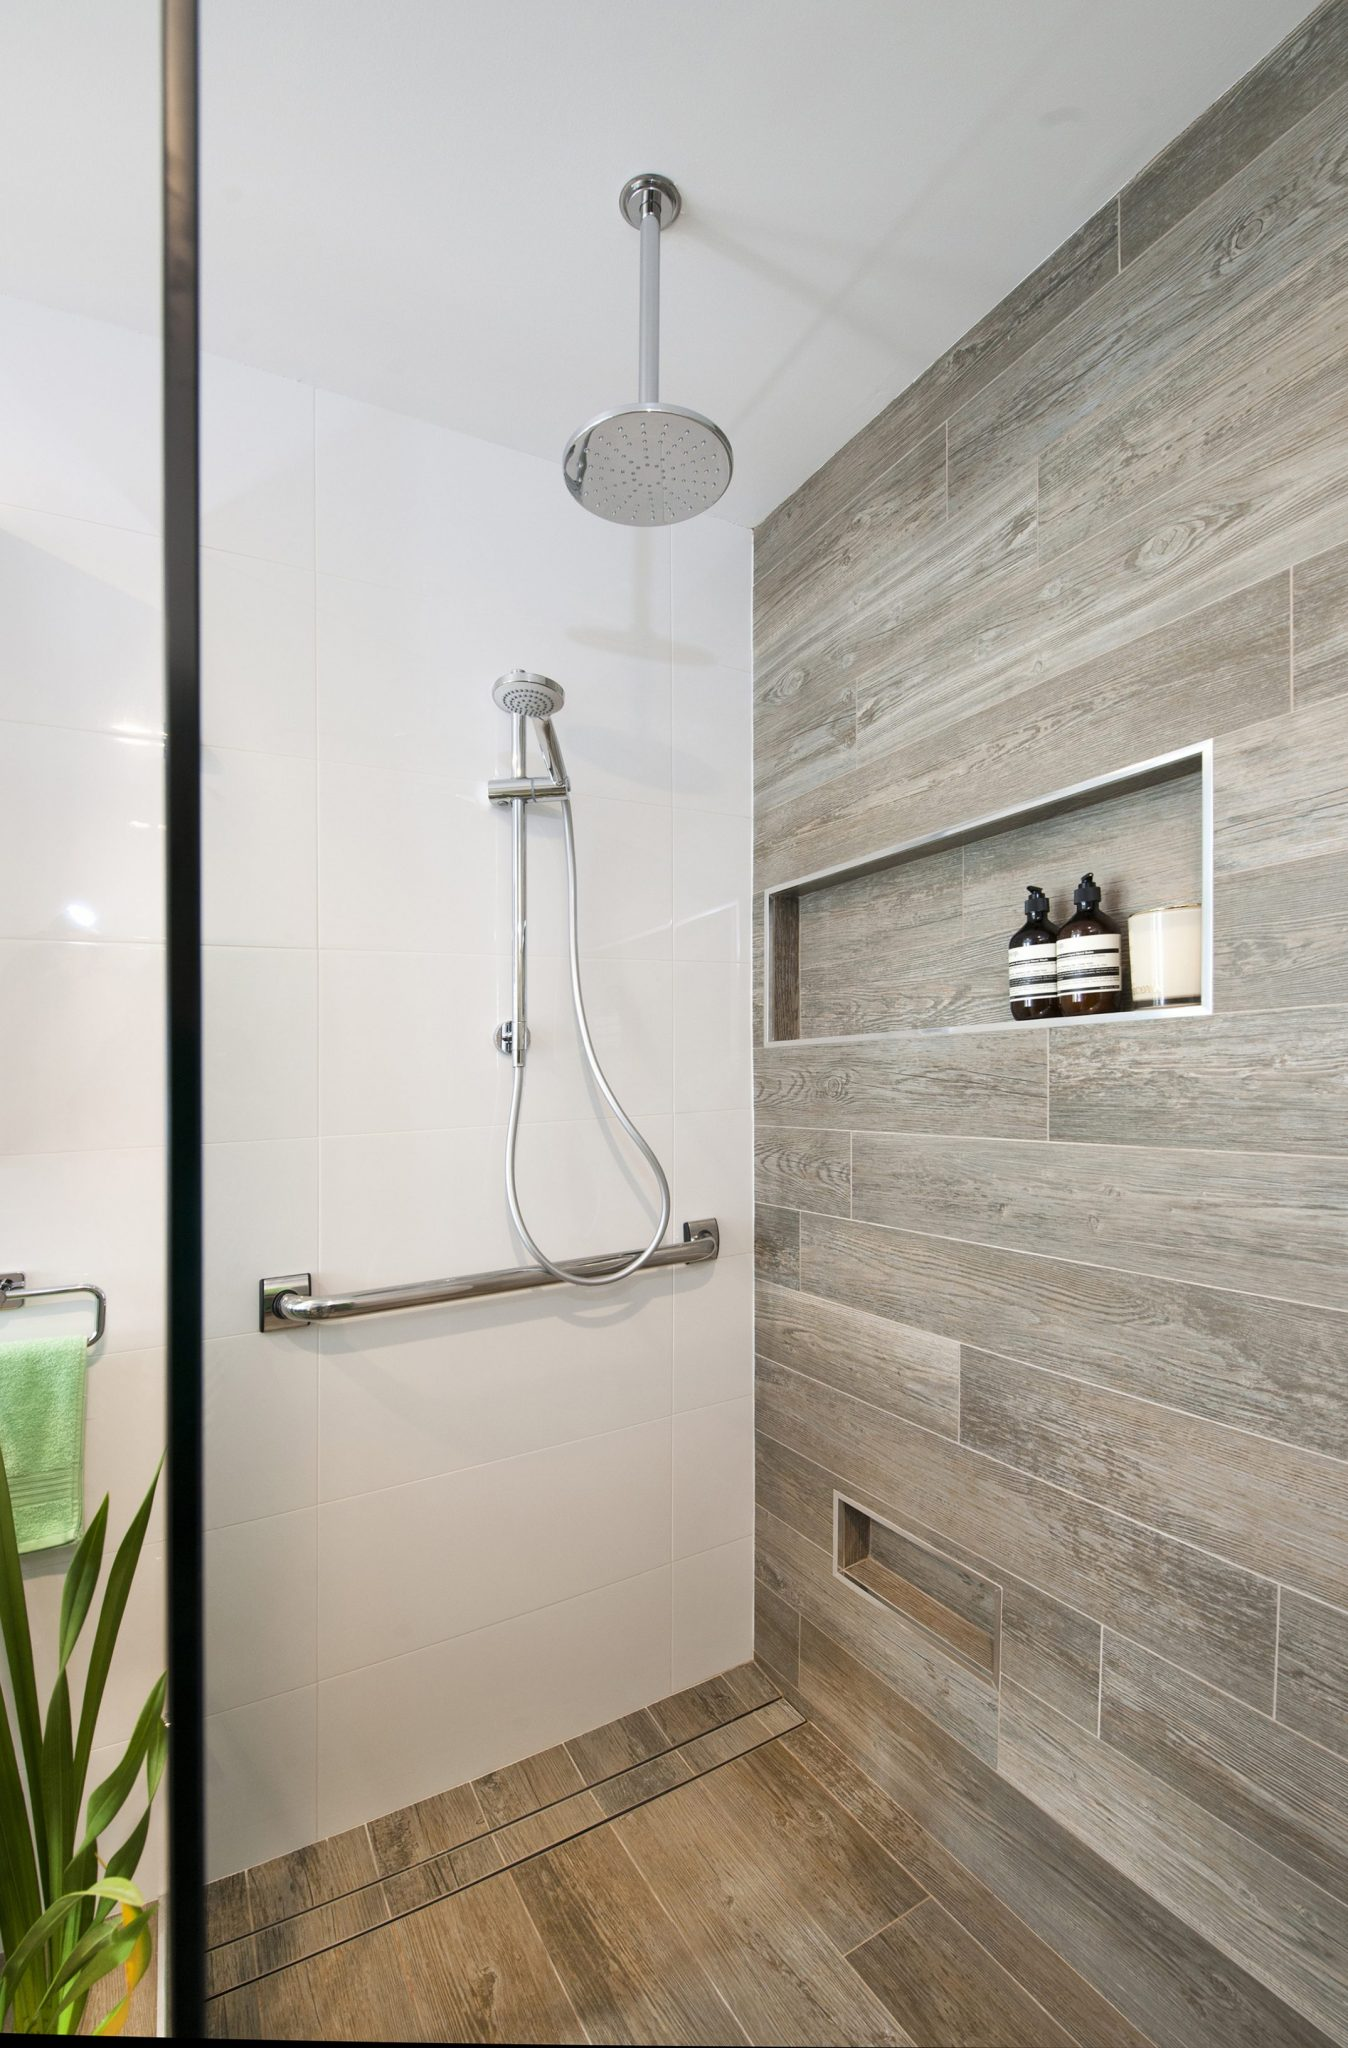 Grey Bathroom Feature Tiles With Original Styles | eyagci.com